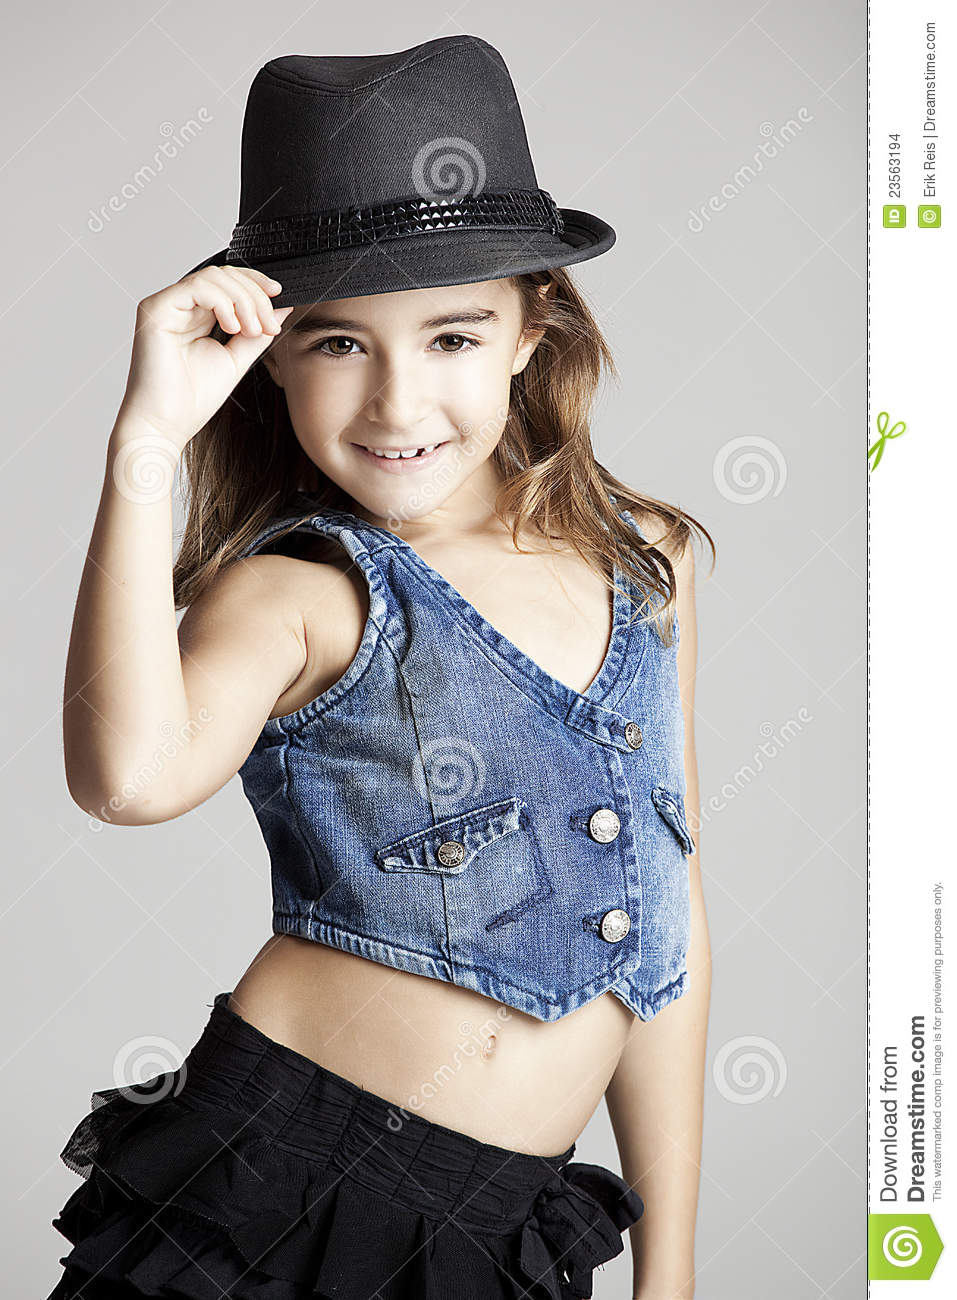 Little Girls Nails And Girls On Pinterest: Fashion Little Girl Stock Photo. Image Of Color, Brunette